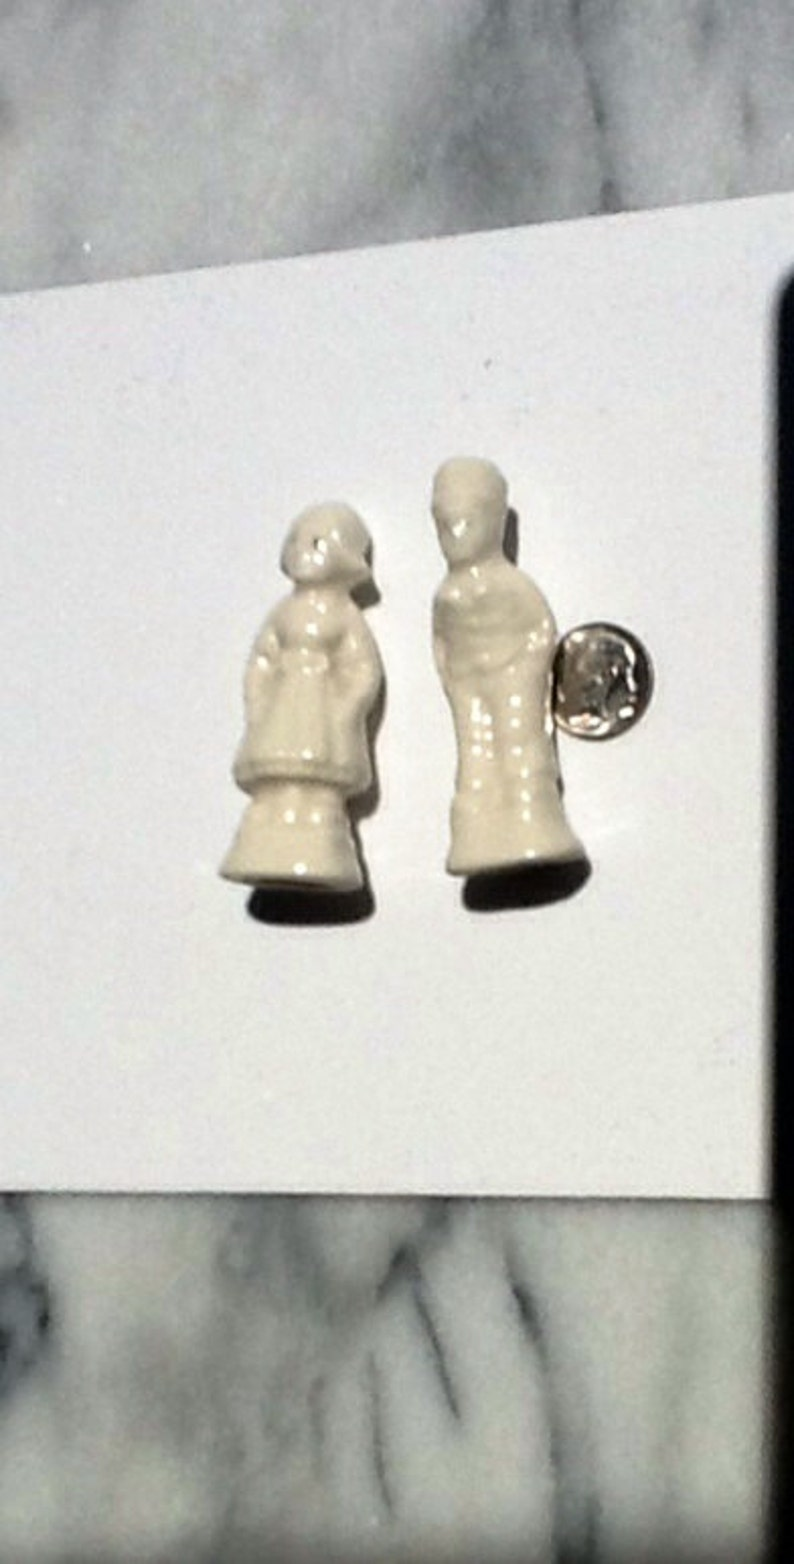 Unique Collectibles. Beautiful Antique Sparkling White china Lot of 2 Rare Miniature Dutch Boy /& Girl Figures in white porcelain